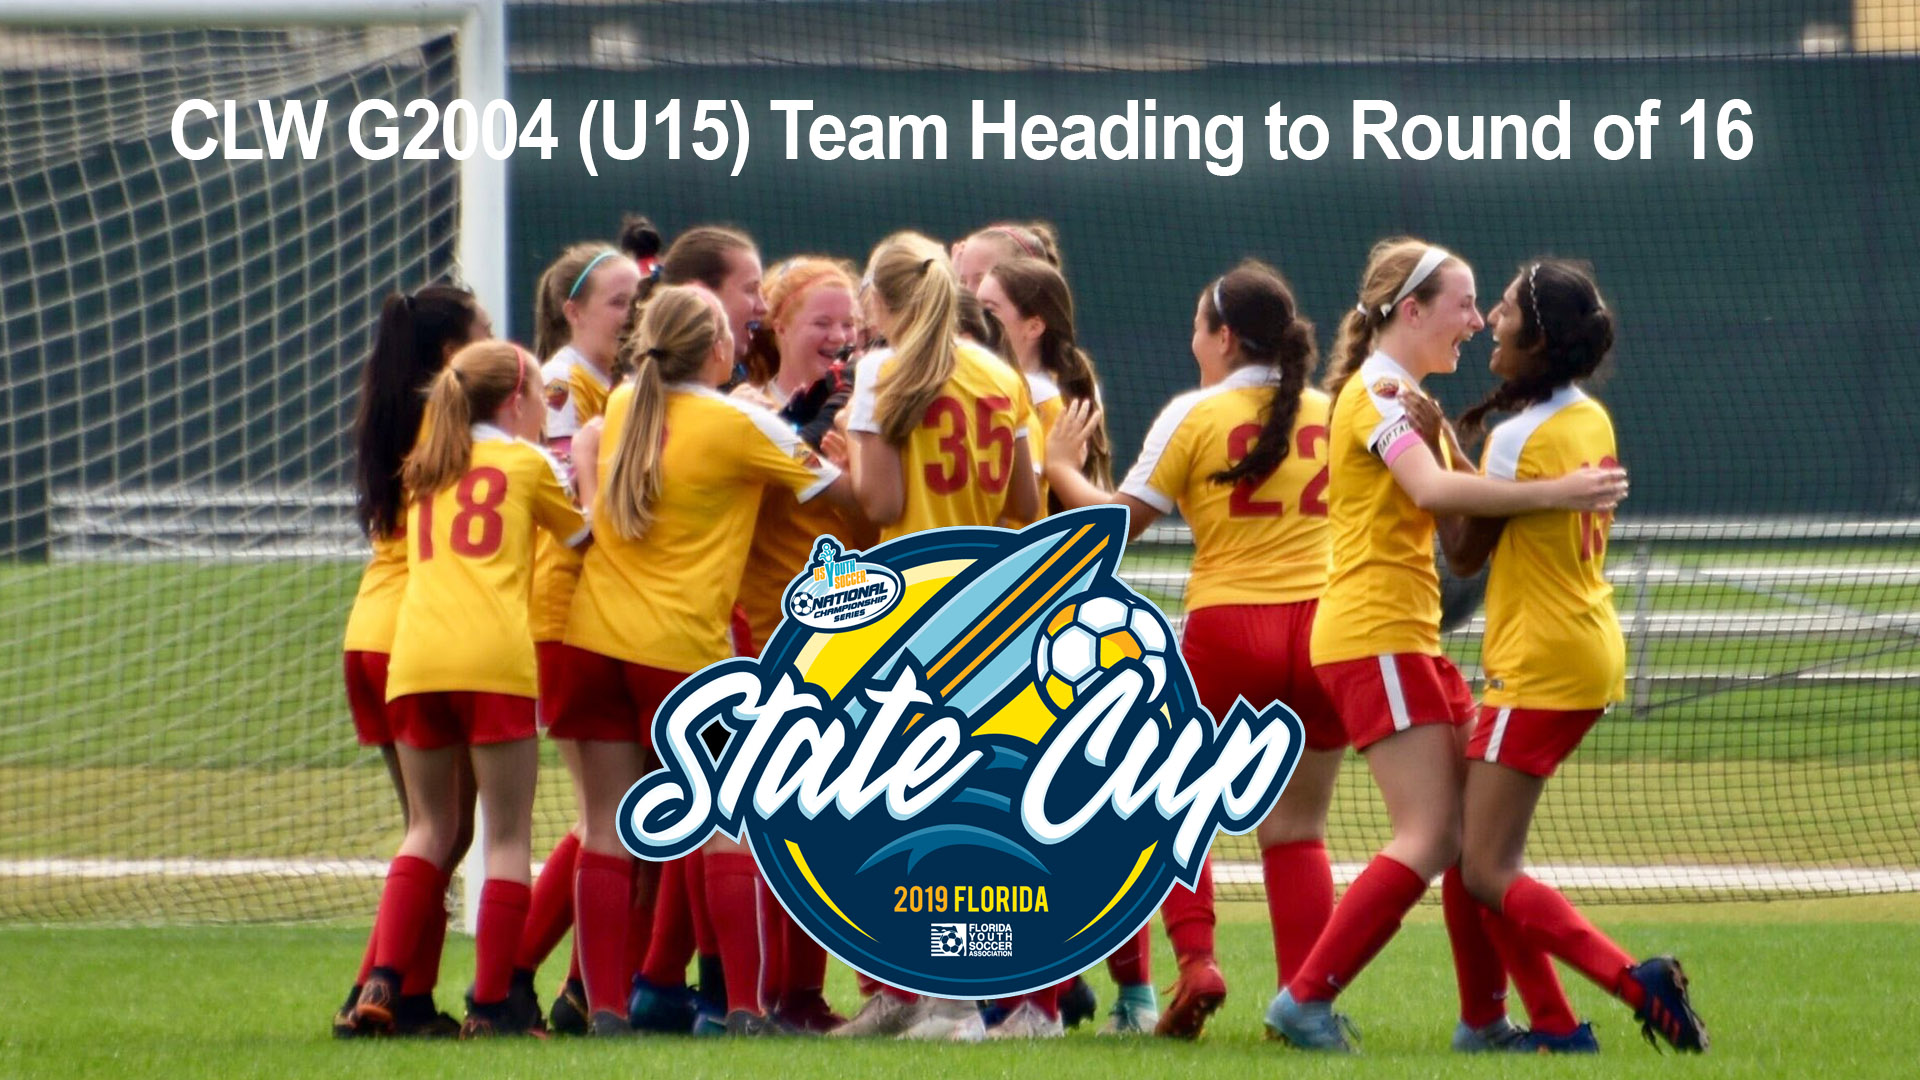 CLW G2004 State Cup Round of 16